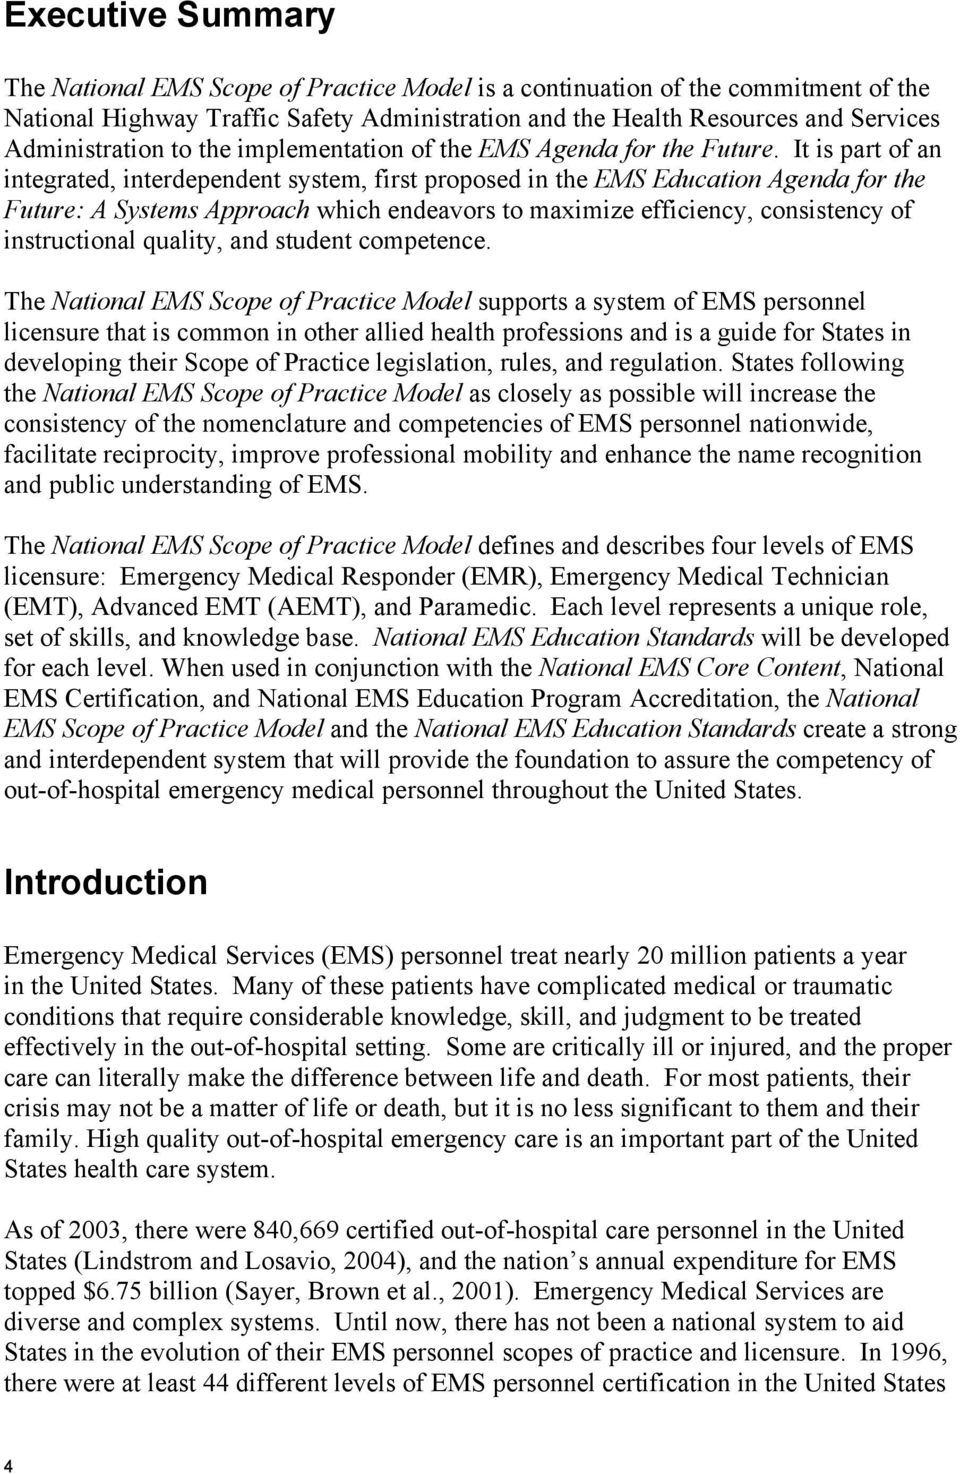 It is part of an integrated, interdependent system, first proposed in the EMS Education Agenda for the Future: A Systems Approach which endeavors to maximize efficiency, consistency of instructional